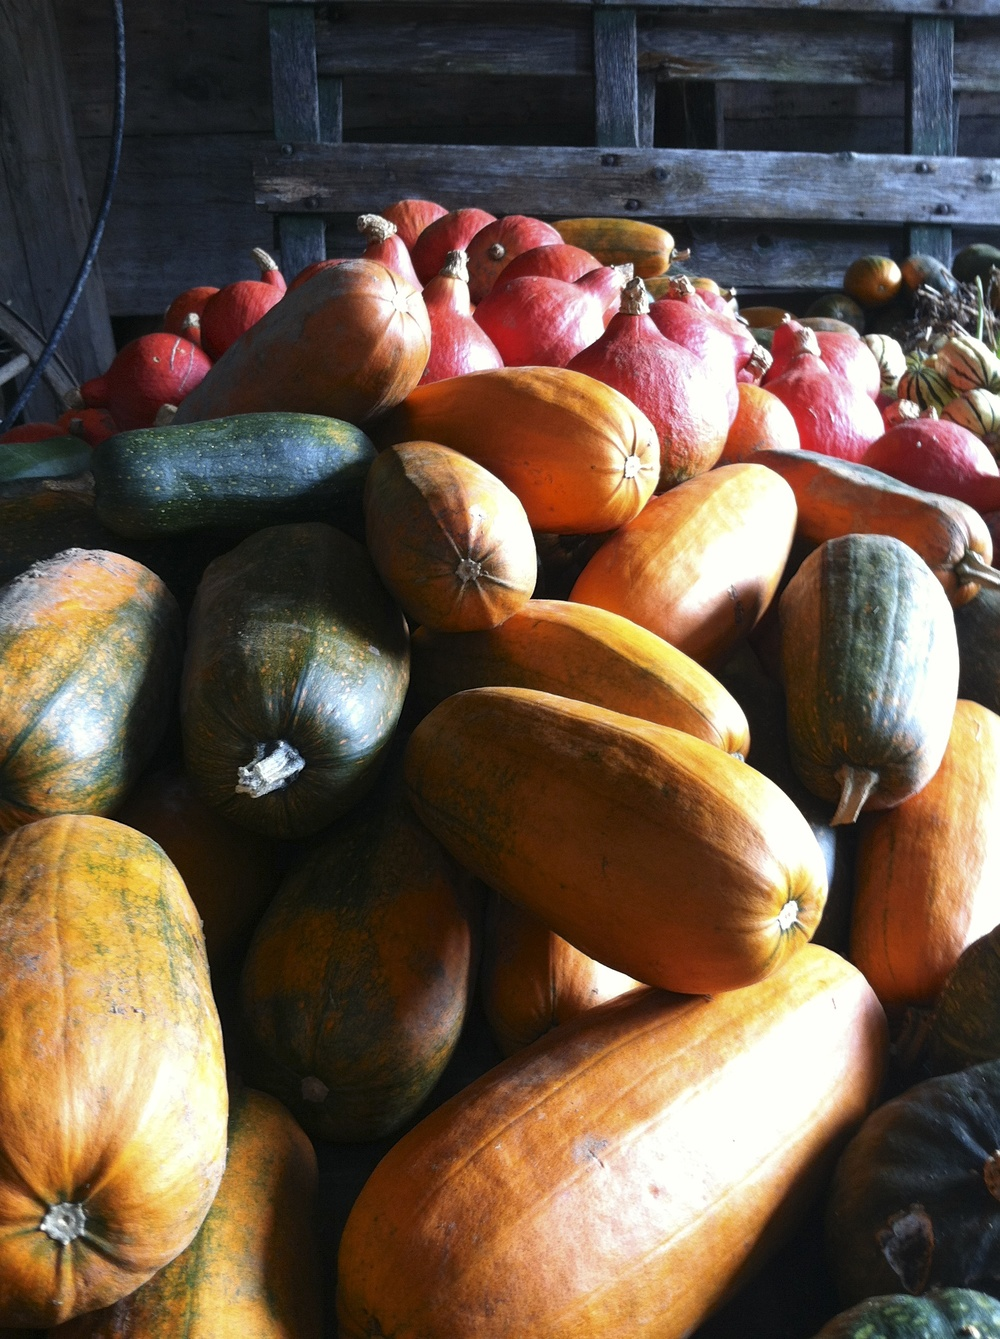 And the beginning of what falls gives us: Squash upon squash.